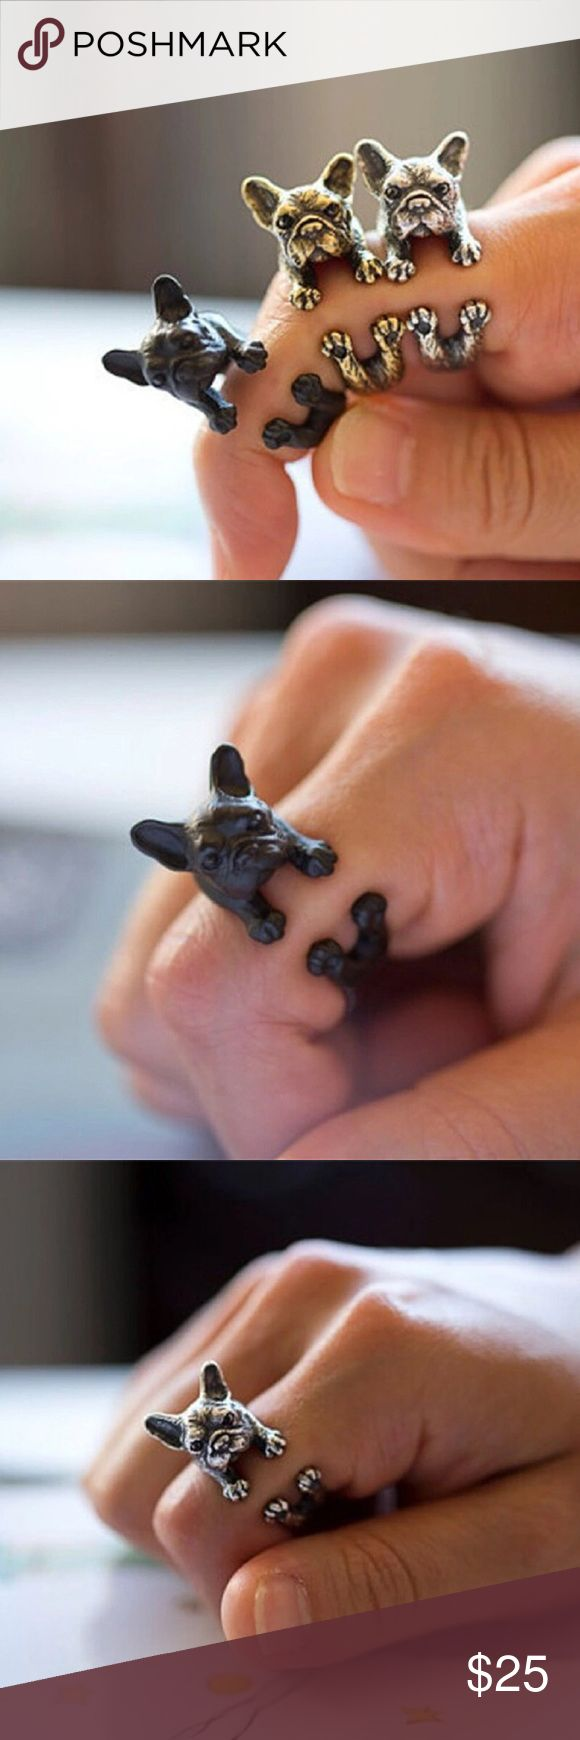 Set of 3 French Bulldog Rings French bull dog ring set.   You will receive: 1 black, 1 silver and 1 Gold (All 3 Pictured)  Same Day Shipping!! Jewelry Rings